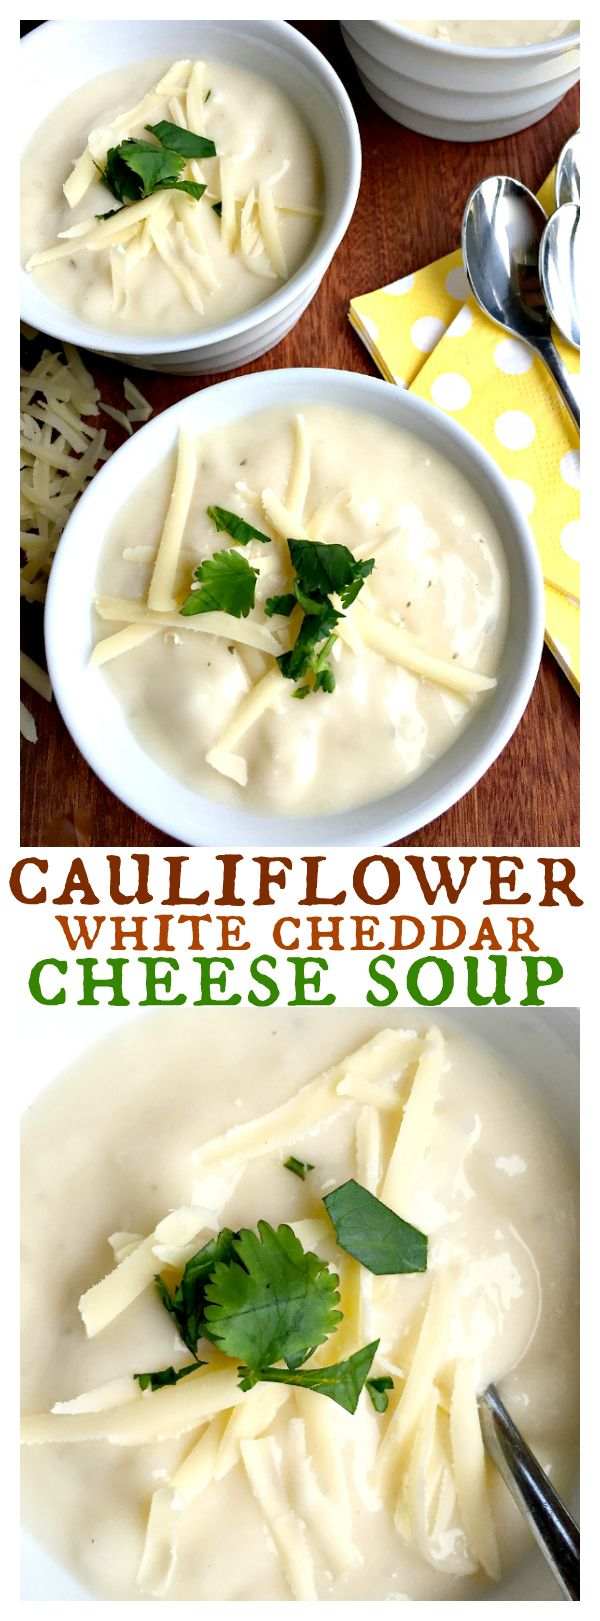 Cauliflower White Cheddar Cheese Soup Can Be Pureed To A